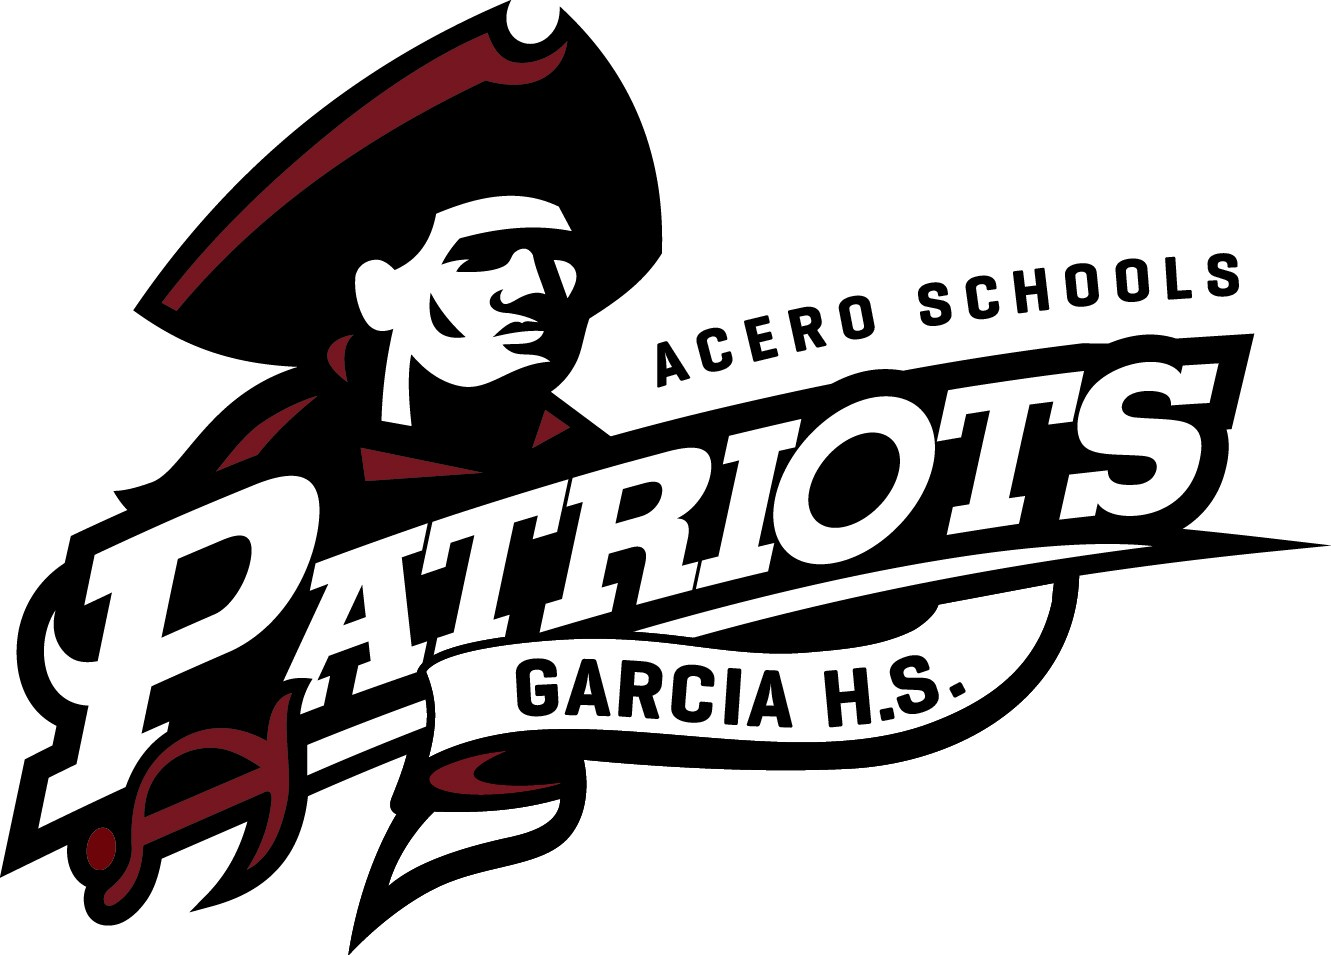 School logo shows a revolutionary war era patriot in a tri-fold hat with the school name and mascot listed over it